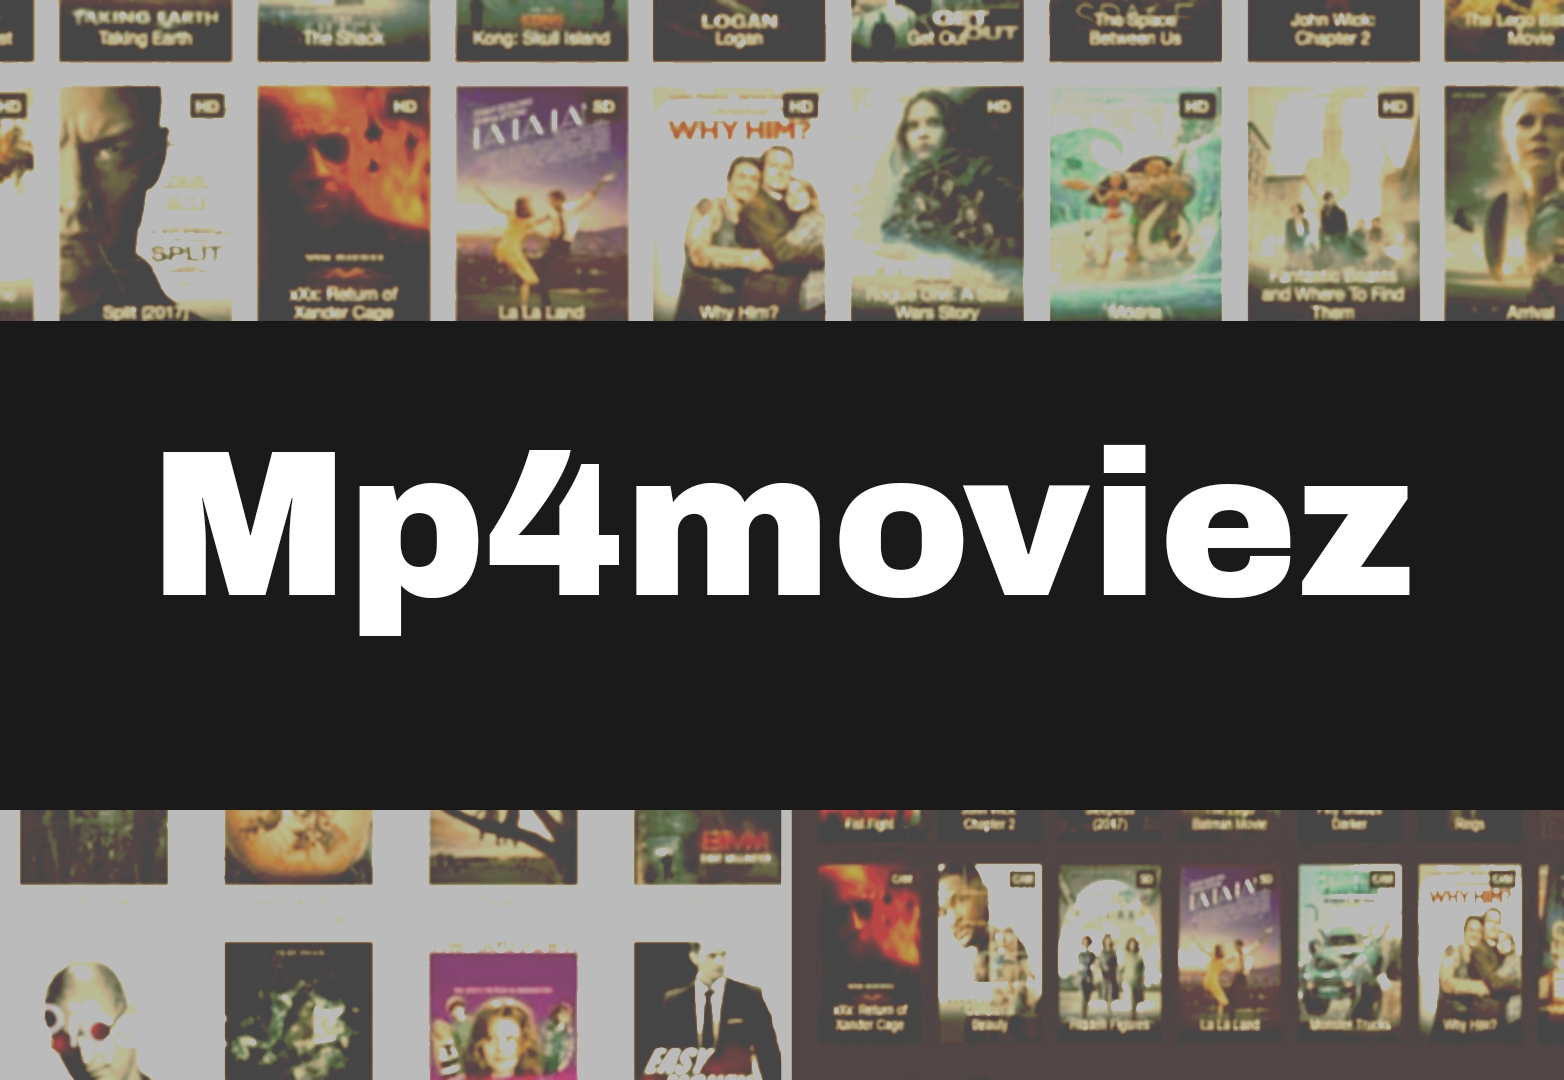 Mp4moviez 2021 – Piracy Illegal HD Movies Download Website for free